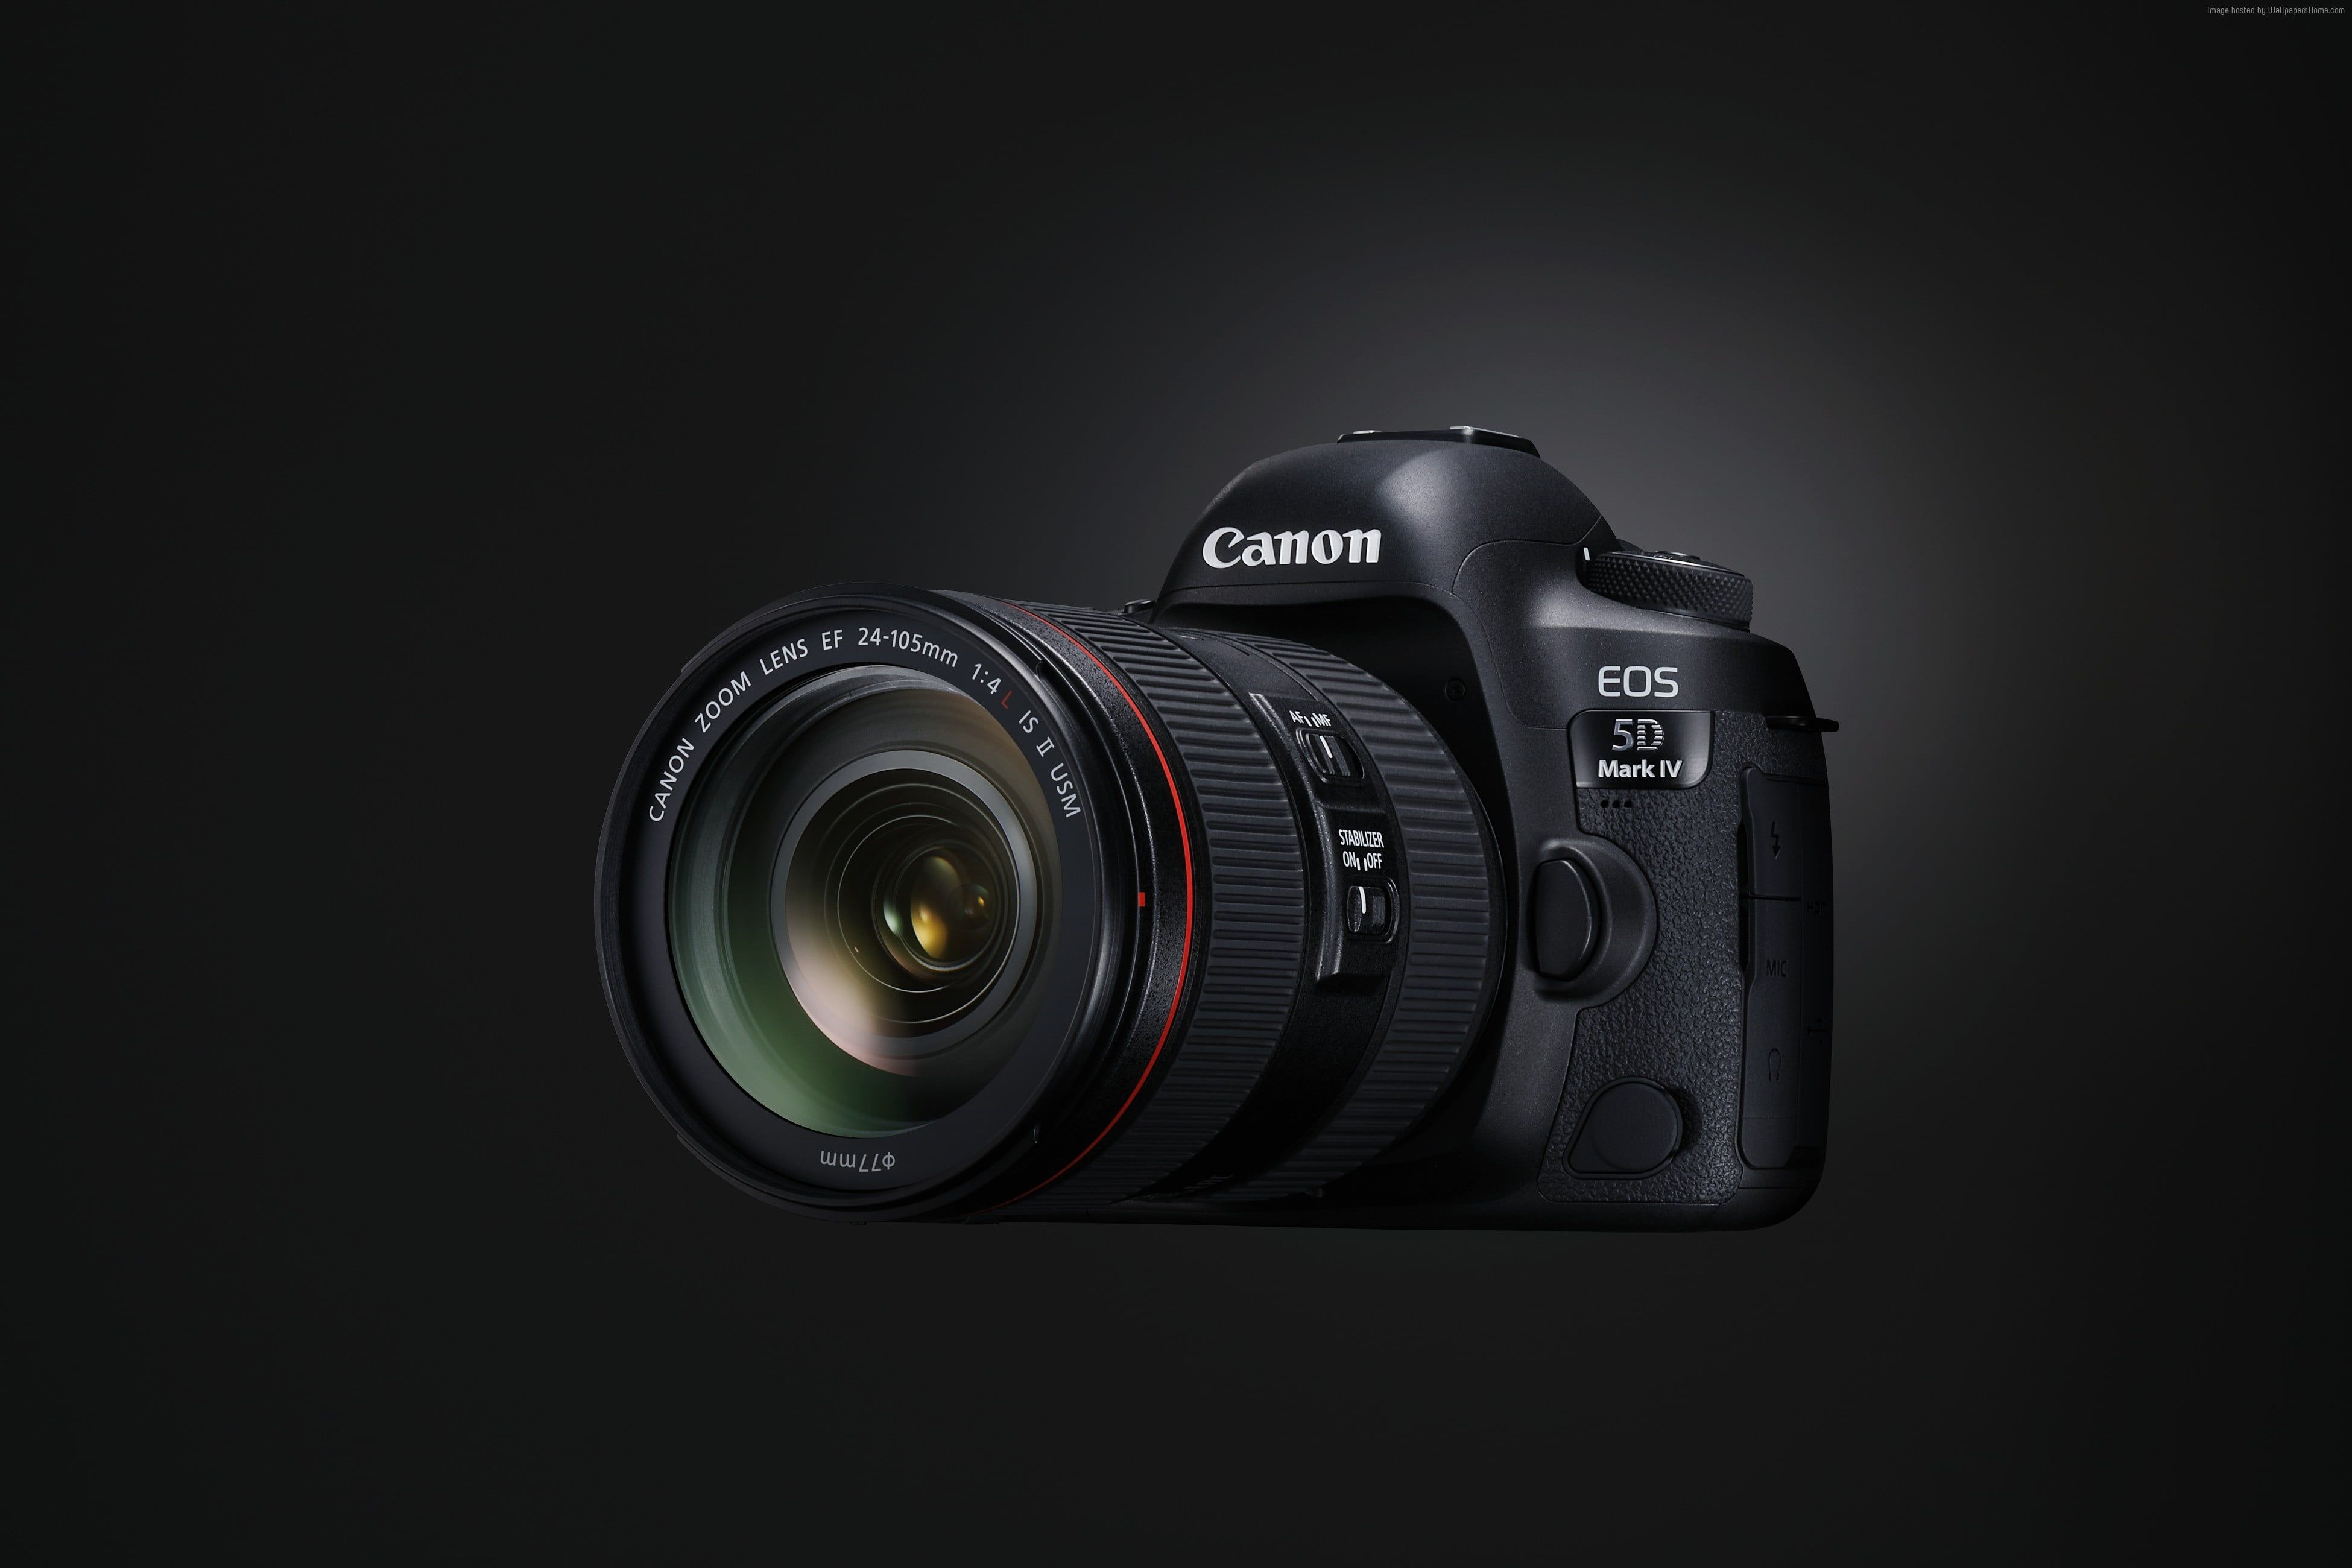 41 Best Free Canon 5d Mark Iii 2560x1440 Wallpapers Wallpaperaccess